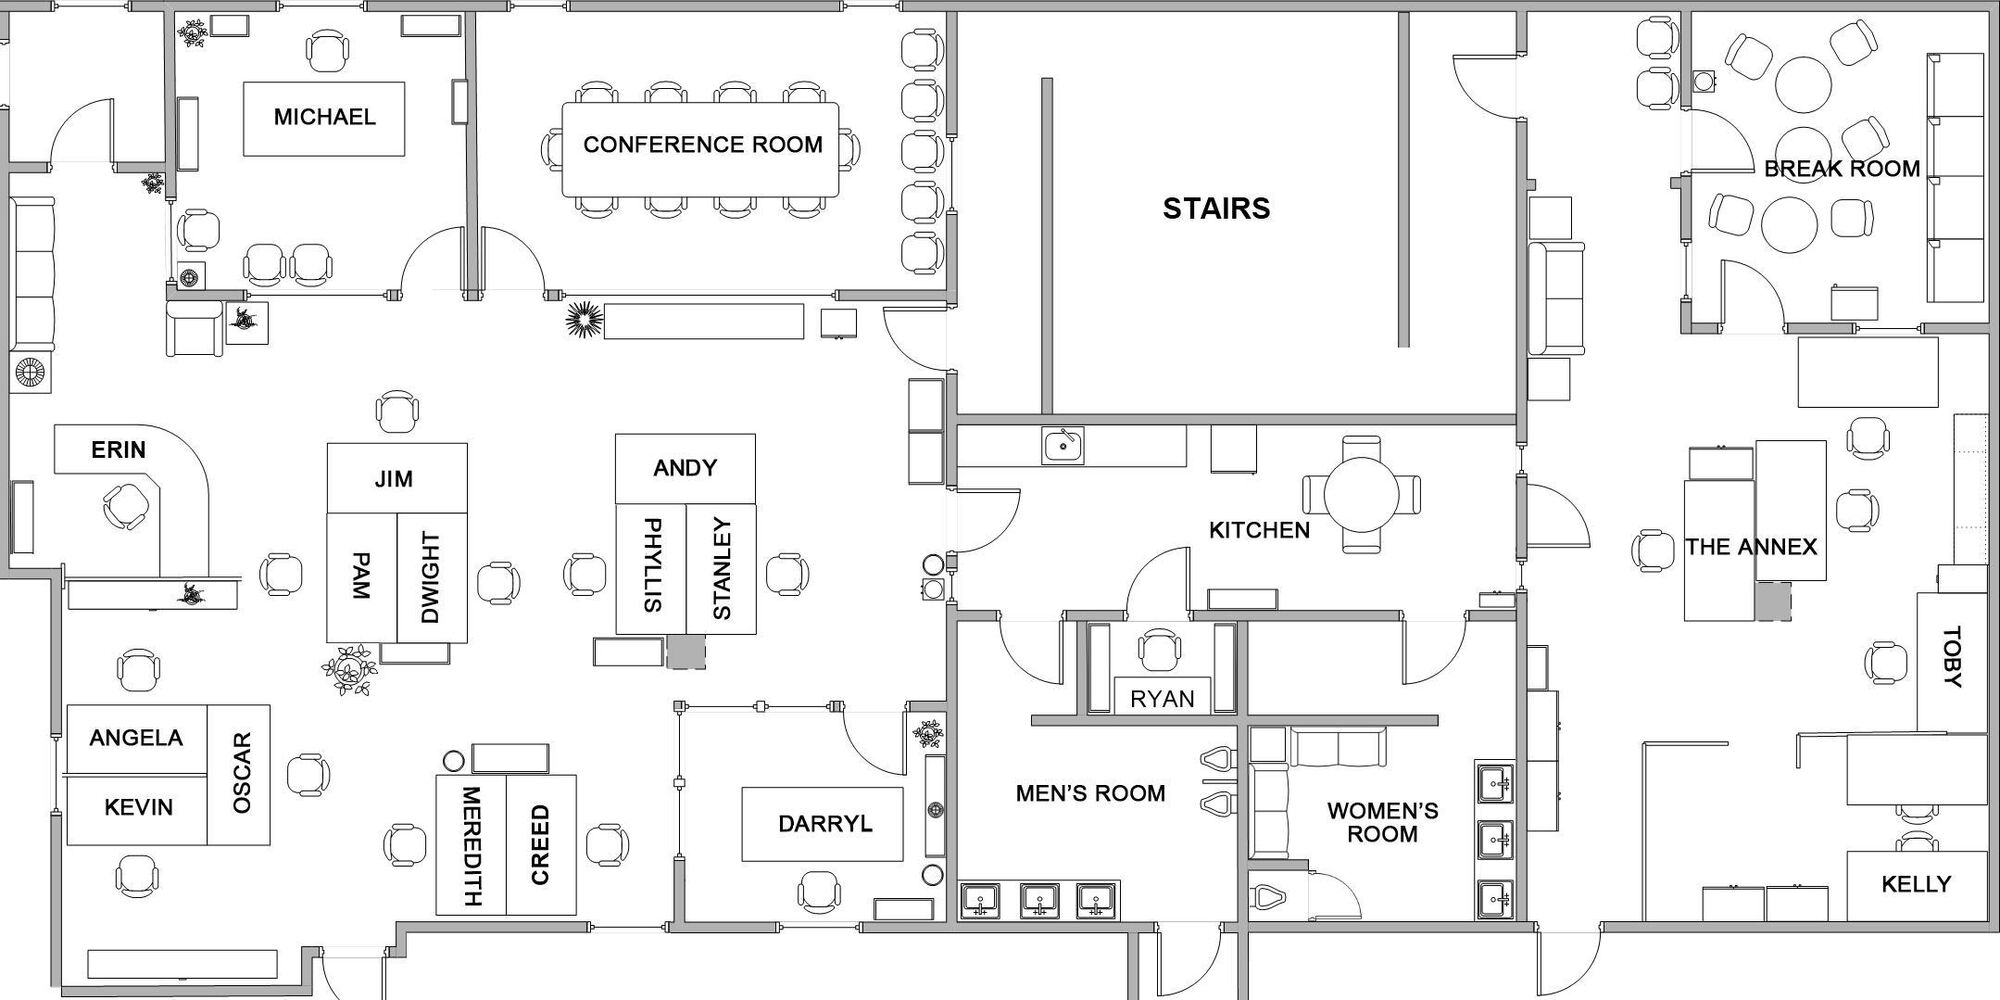 Dunder mifflin scranton dunderpedia the office wiki for Draw office floor plan